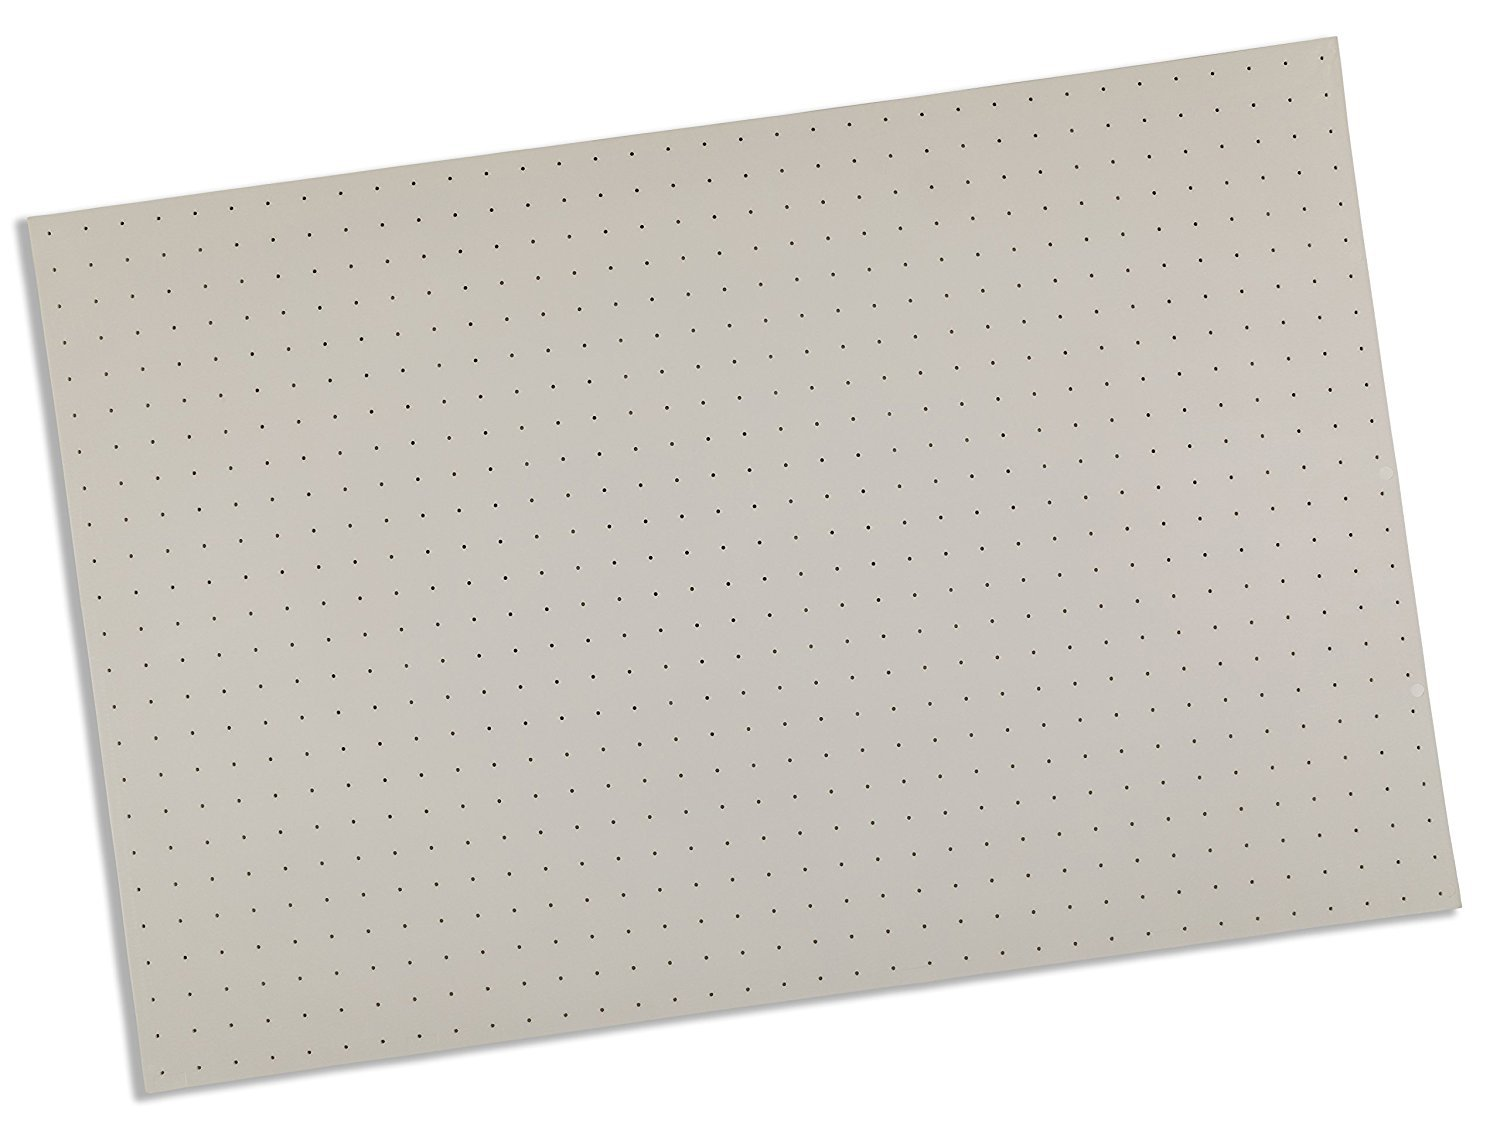 Rolyan Splinting Material Sheet, Ezeform, White, 1/8'' x 24'' x 36'', 1% Perforated, Single Sheet by Cedarburg